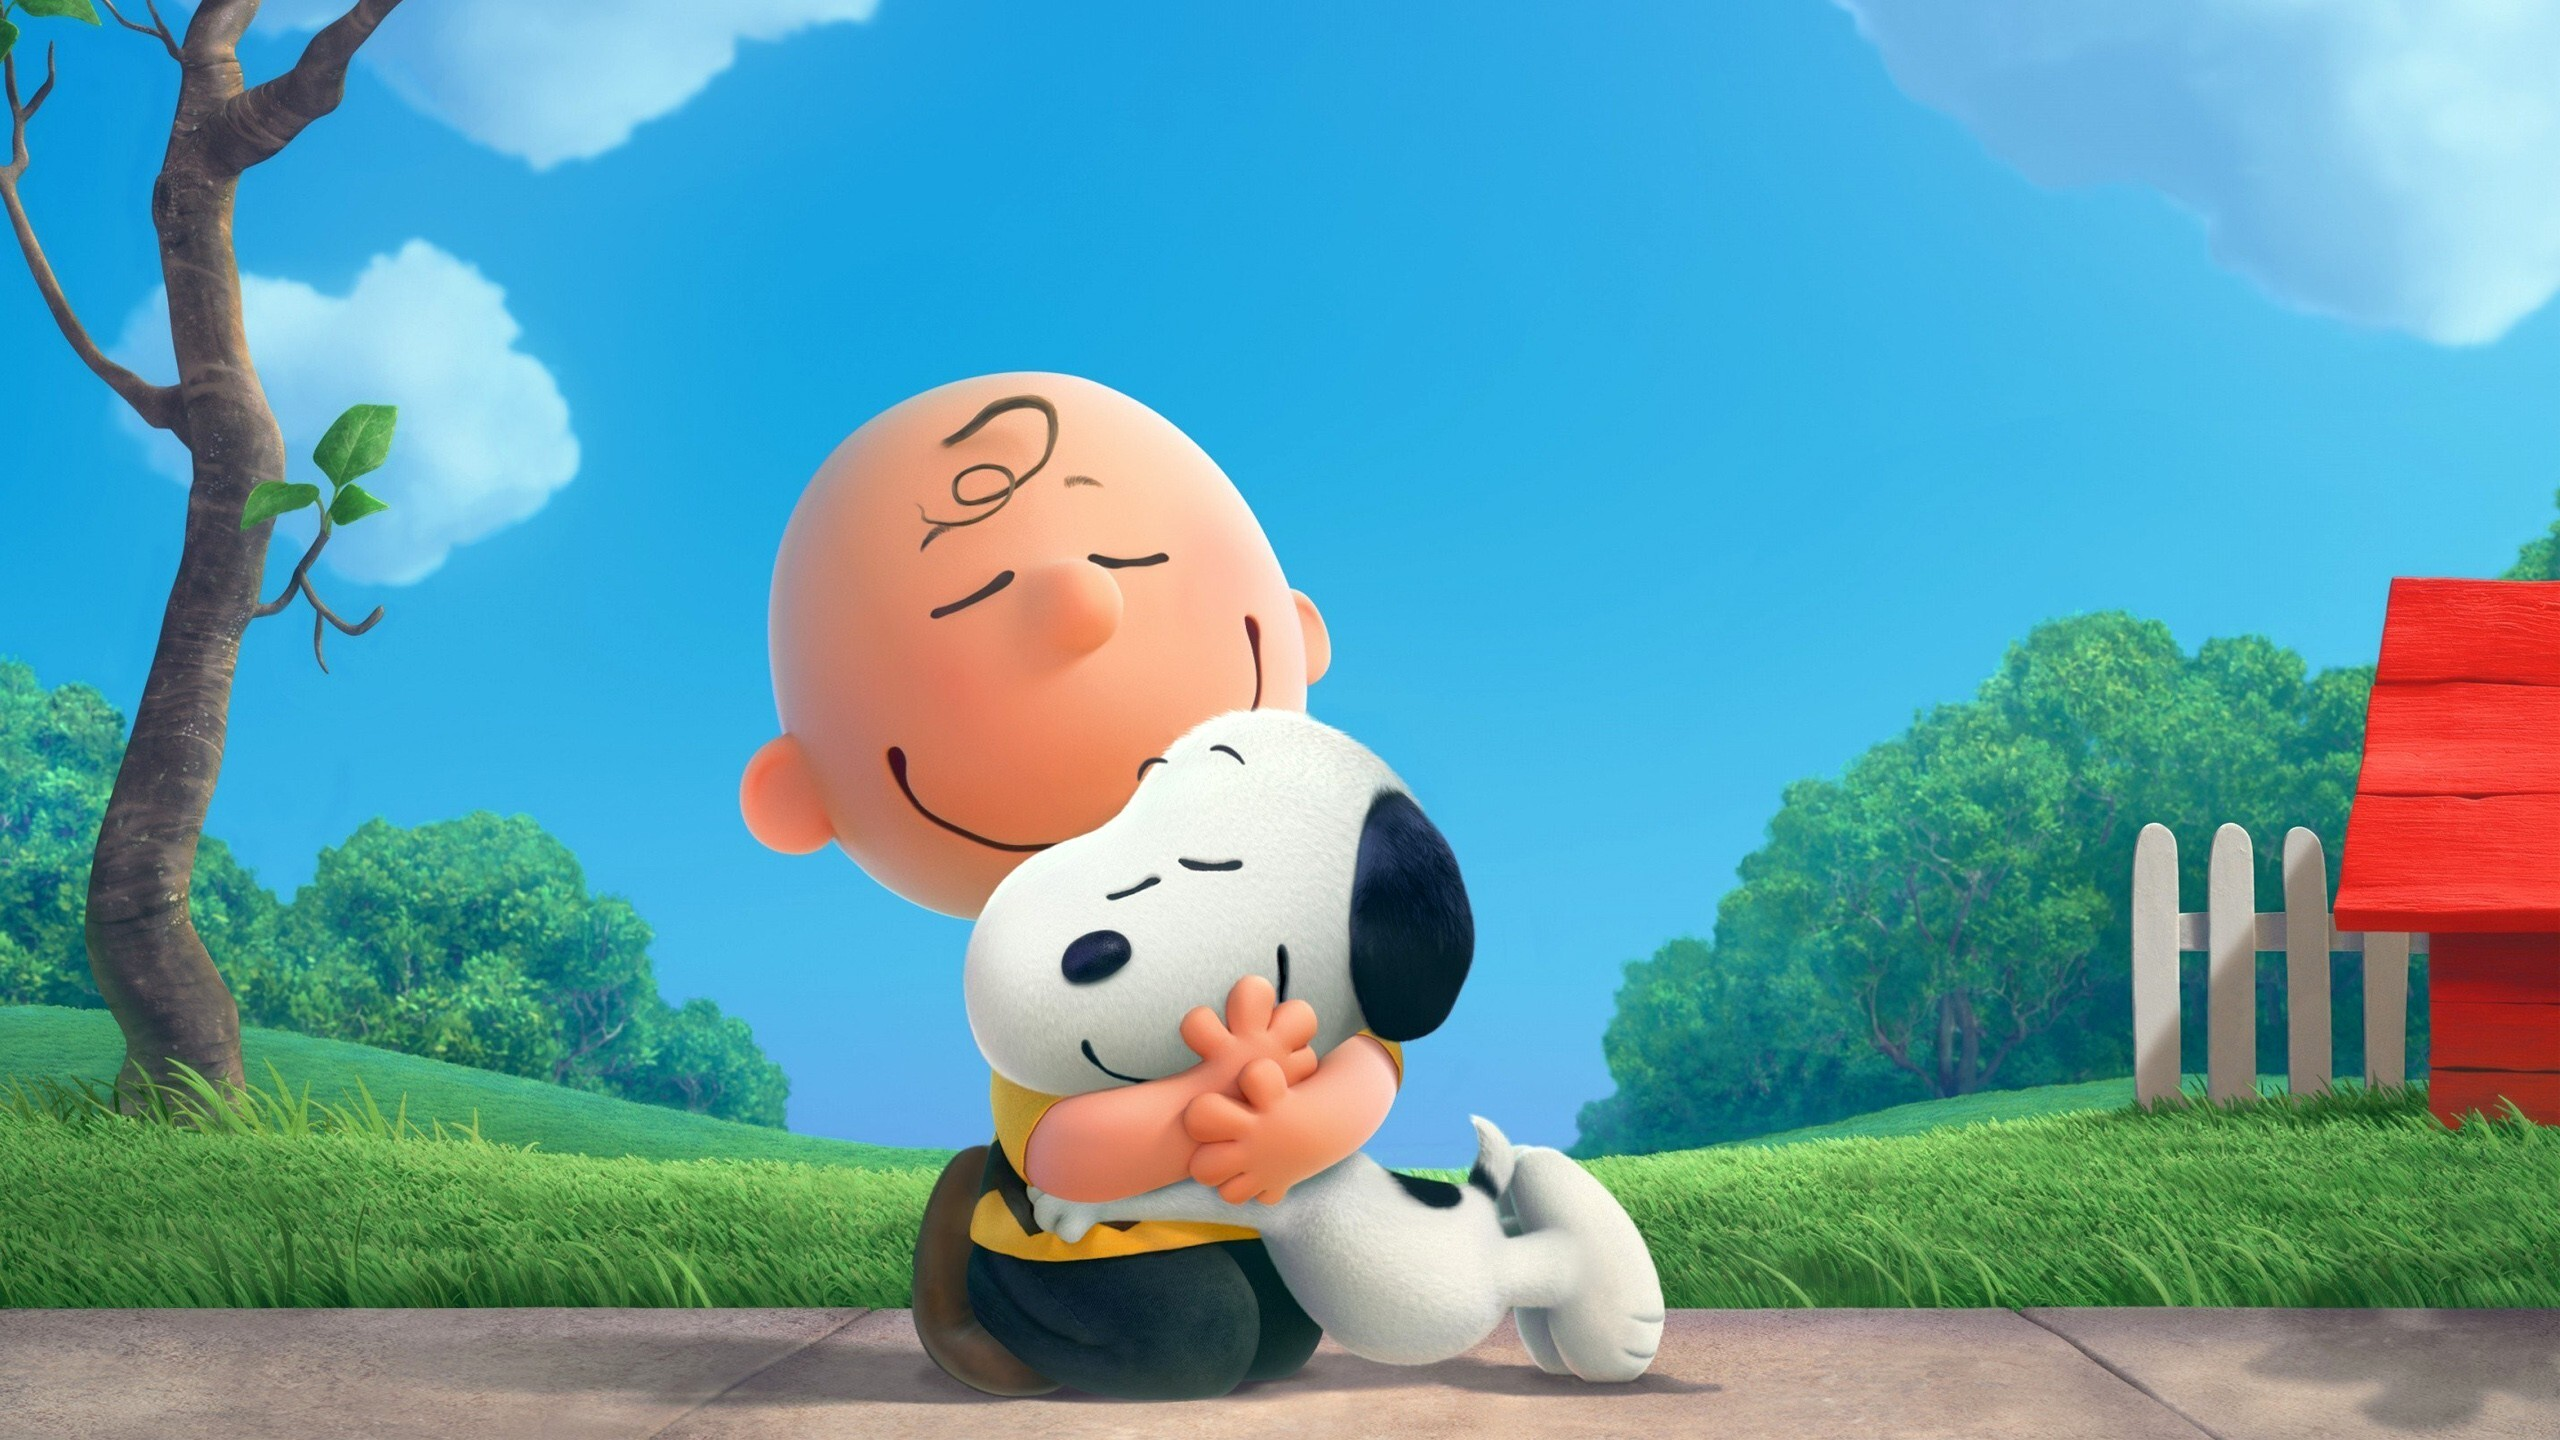 2560x1440 The Peanuts Charlie Brown Snoppy 1440p Resolution